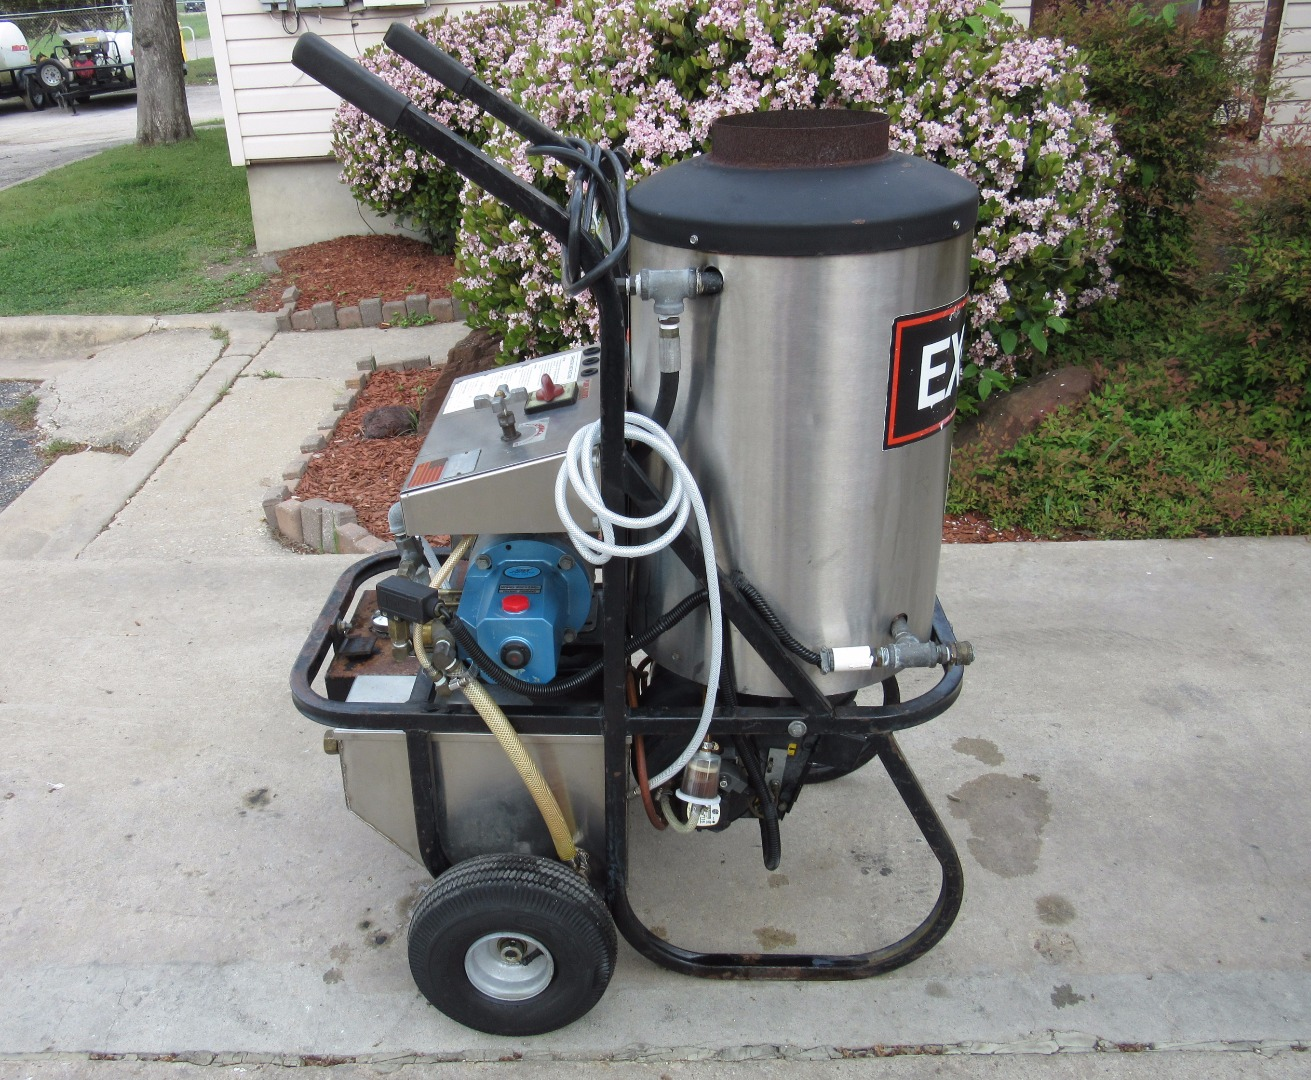 Excell Hot Diesel Burner 1000PSI Pressure Washer Used, Tested Good.  Highslide JS. Highslide JS